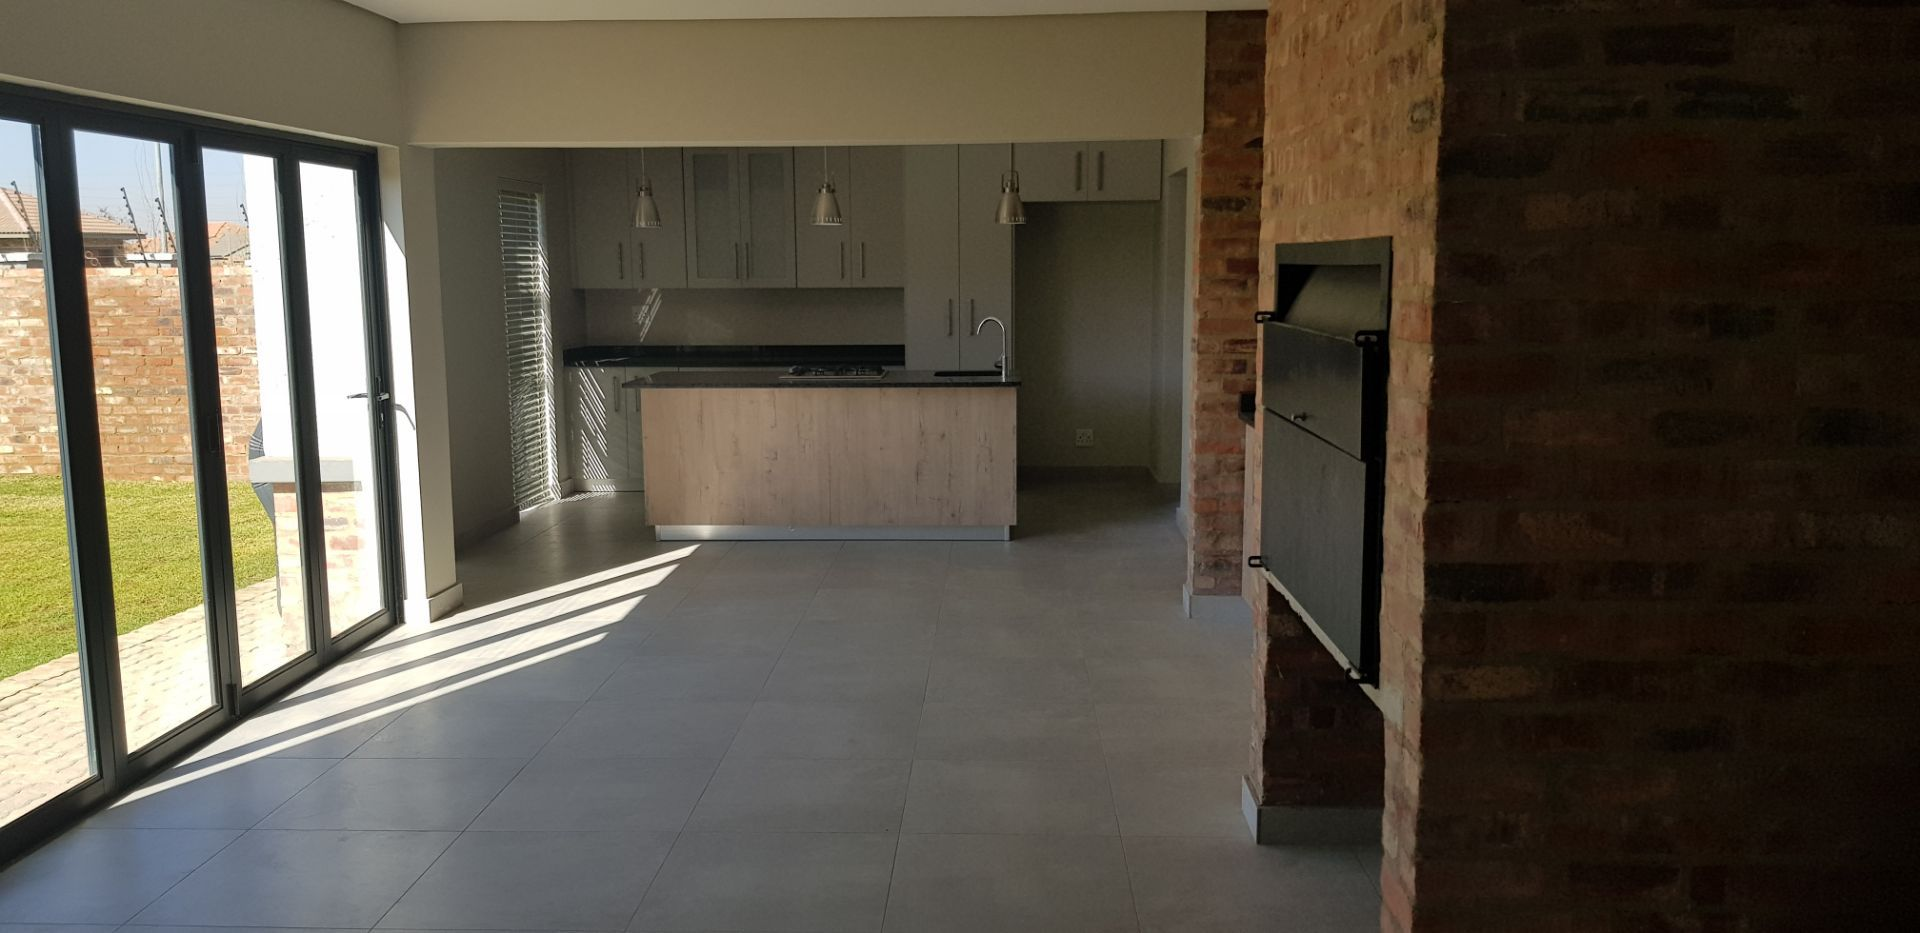 House in Lifestyle Estate - 20190712_111206.jpg